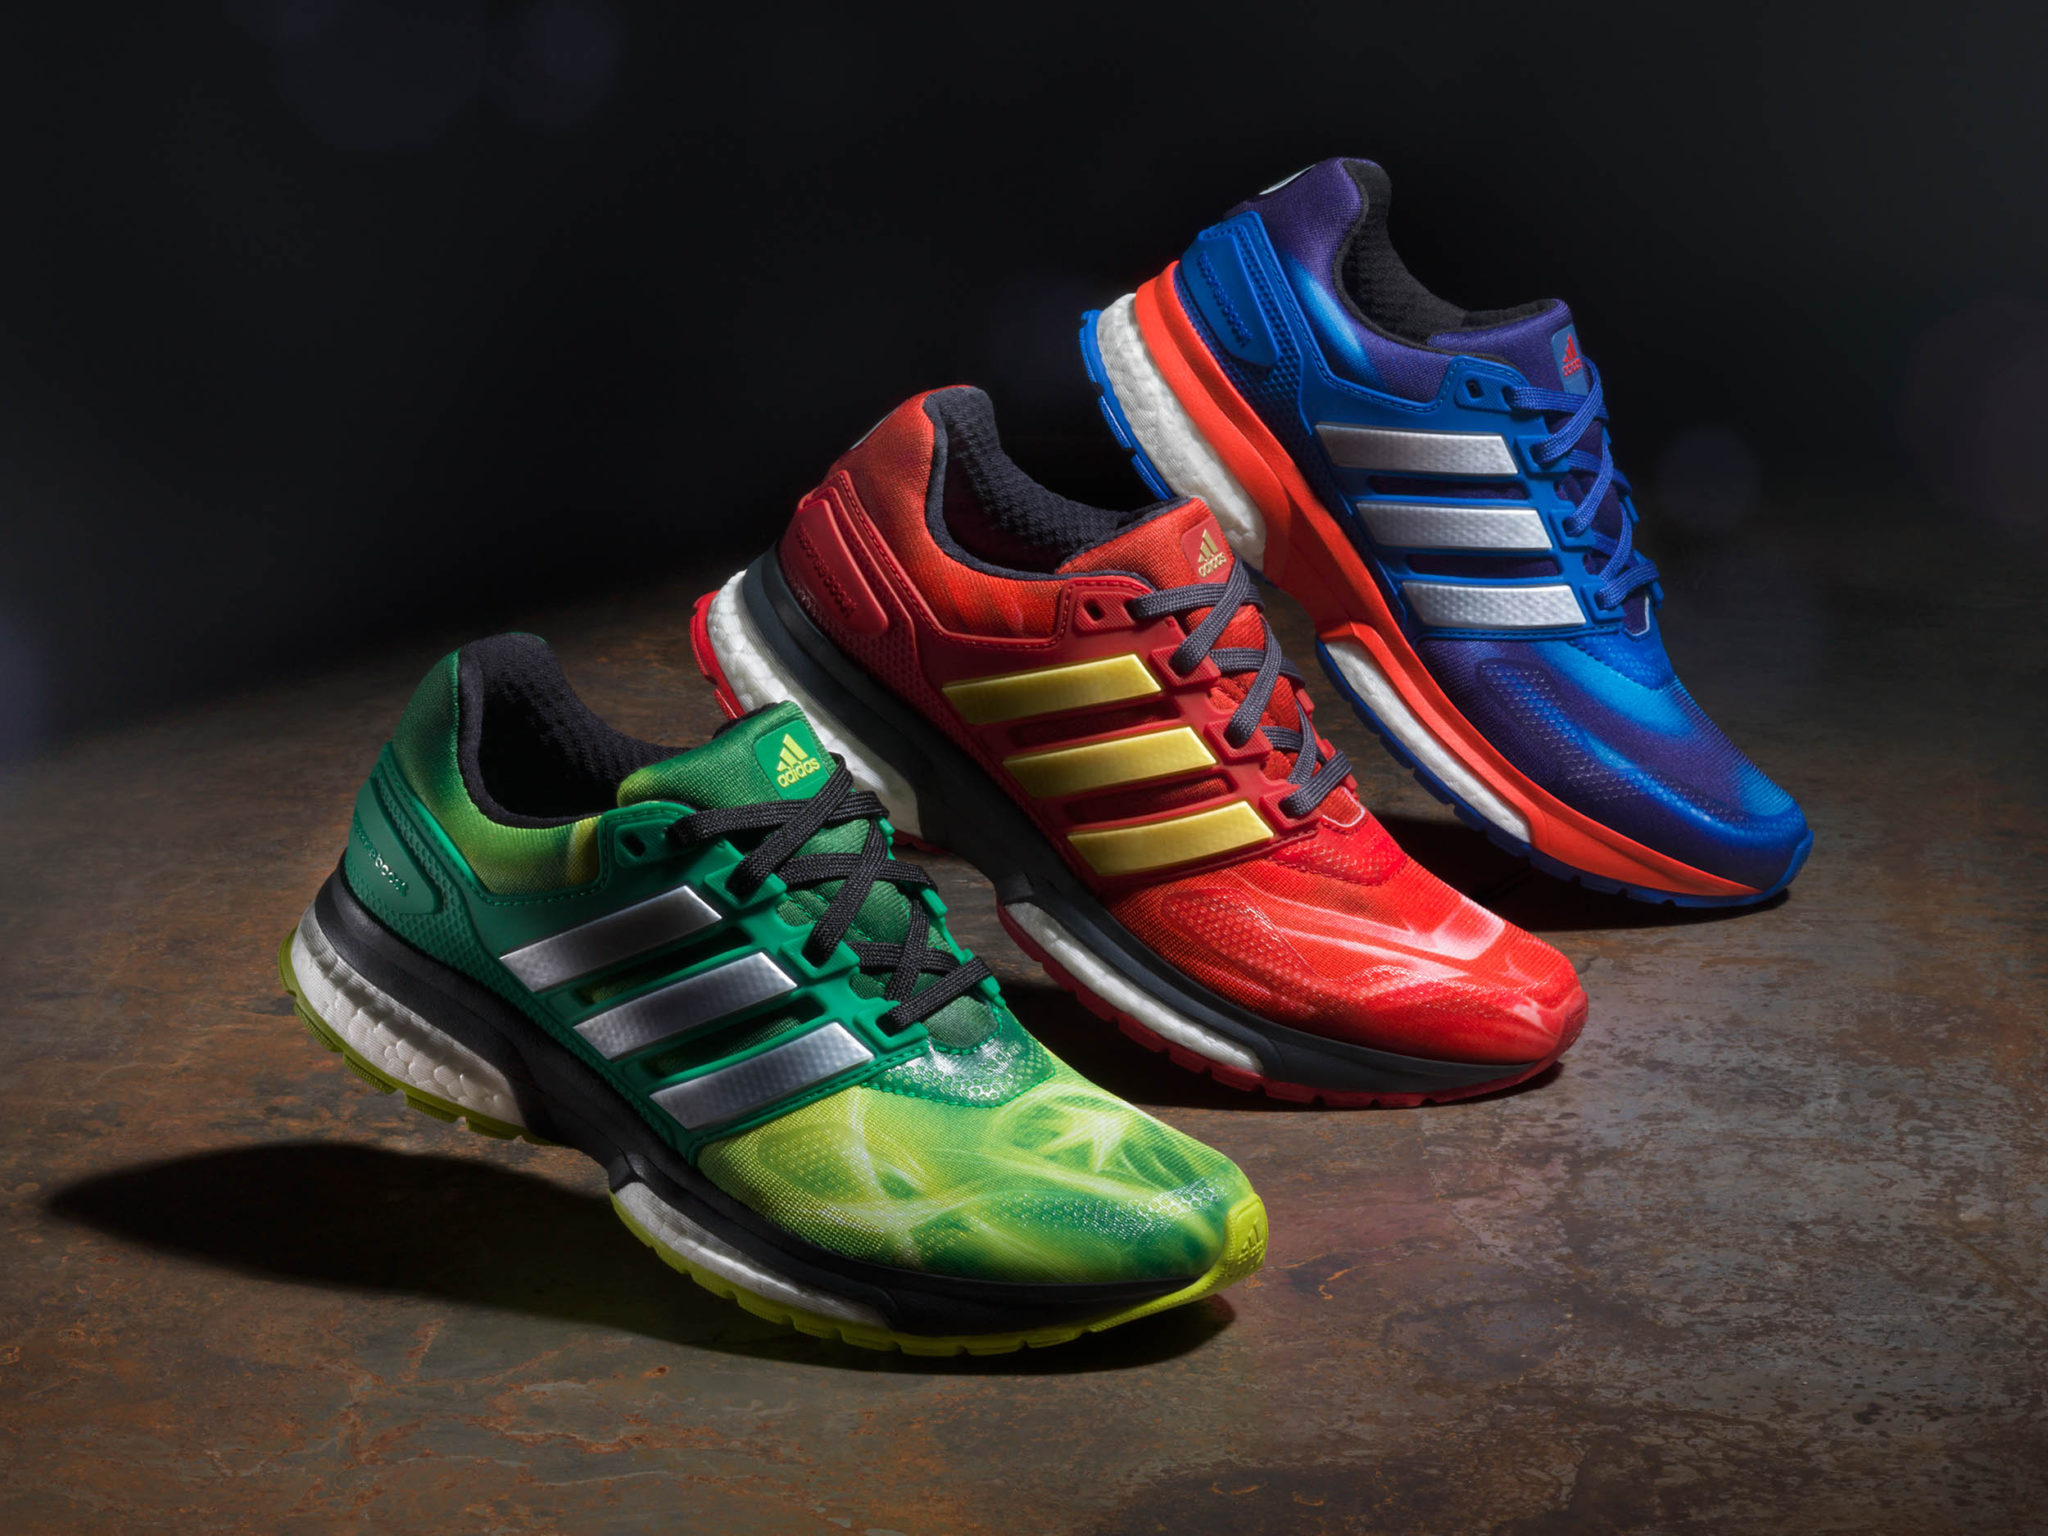 adidas x Marvel's Avengers collection